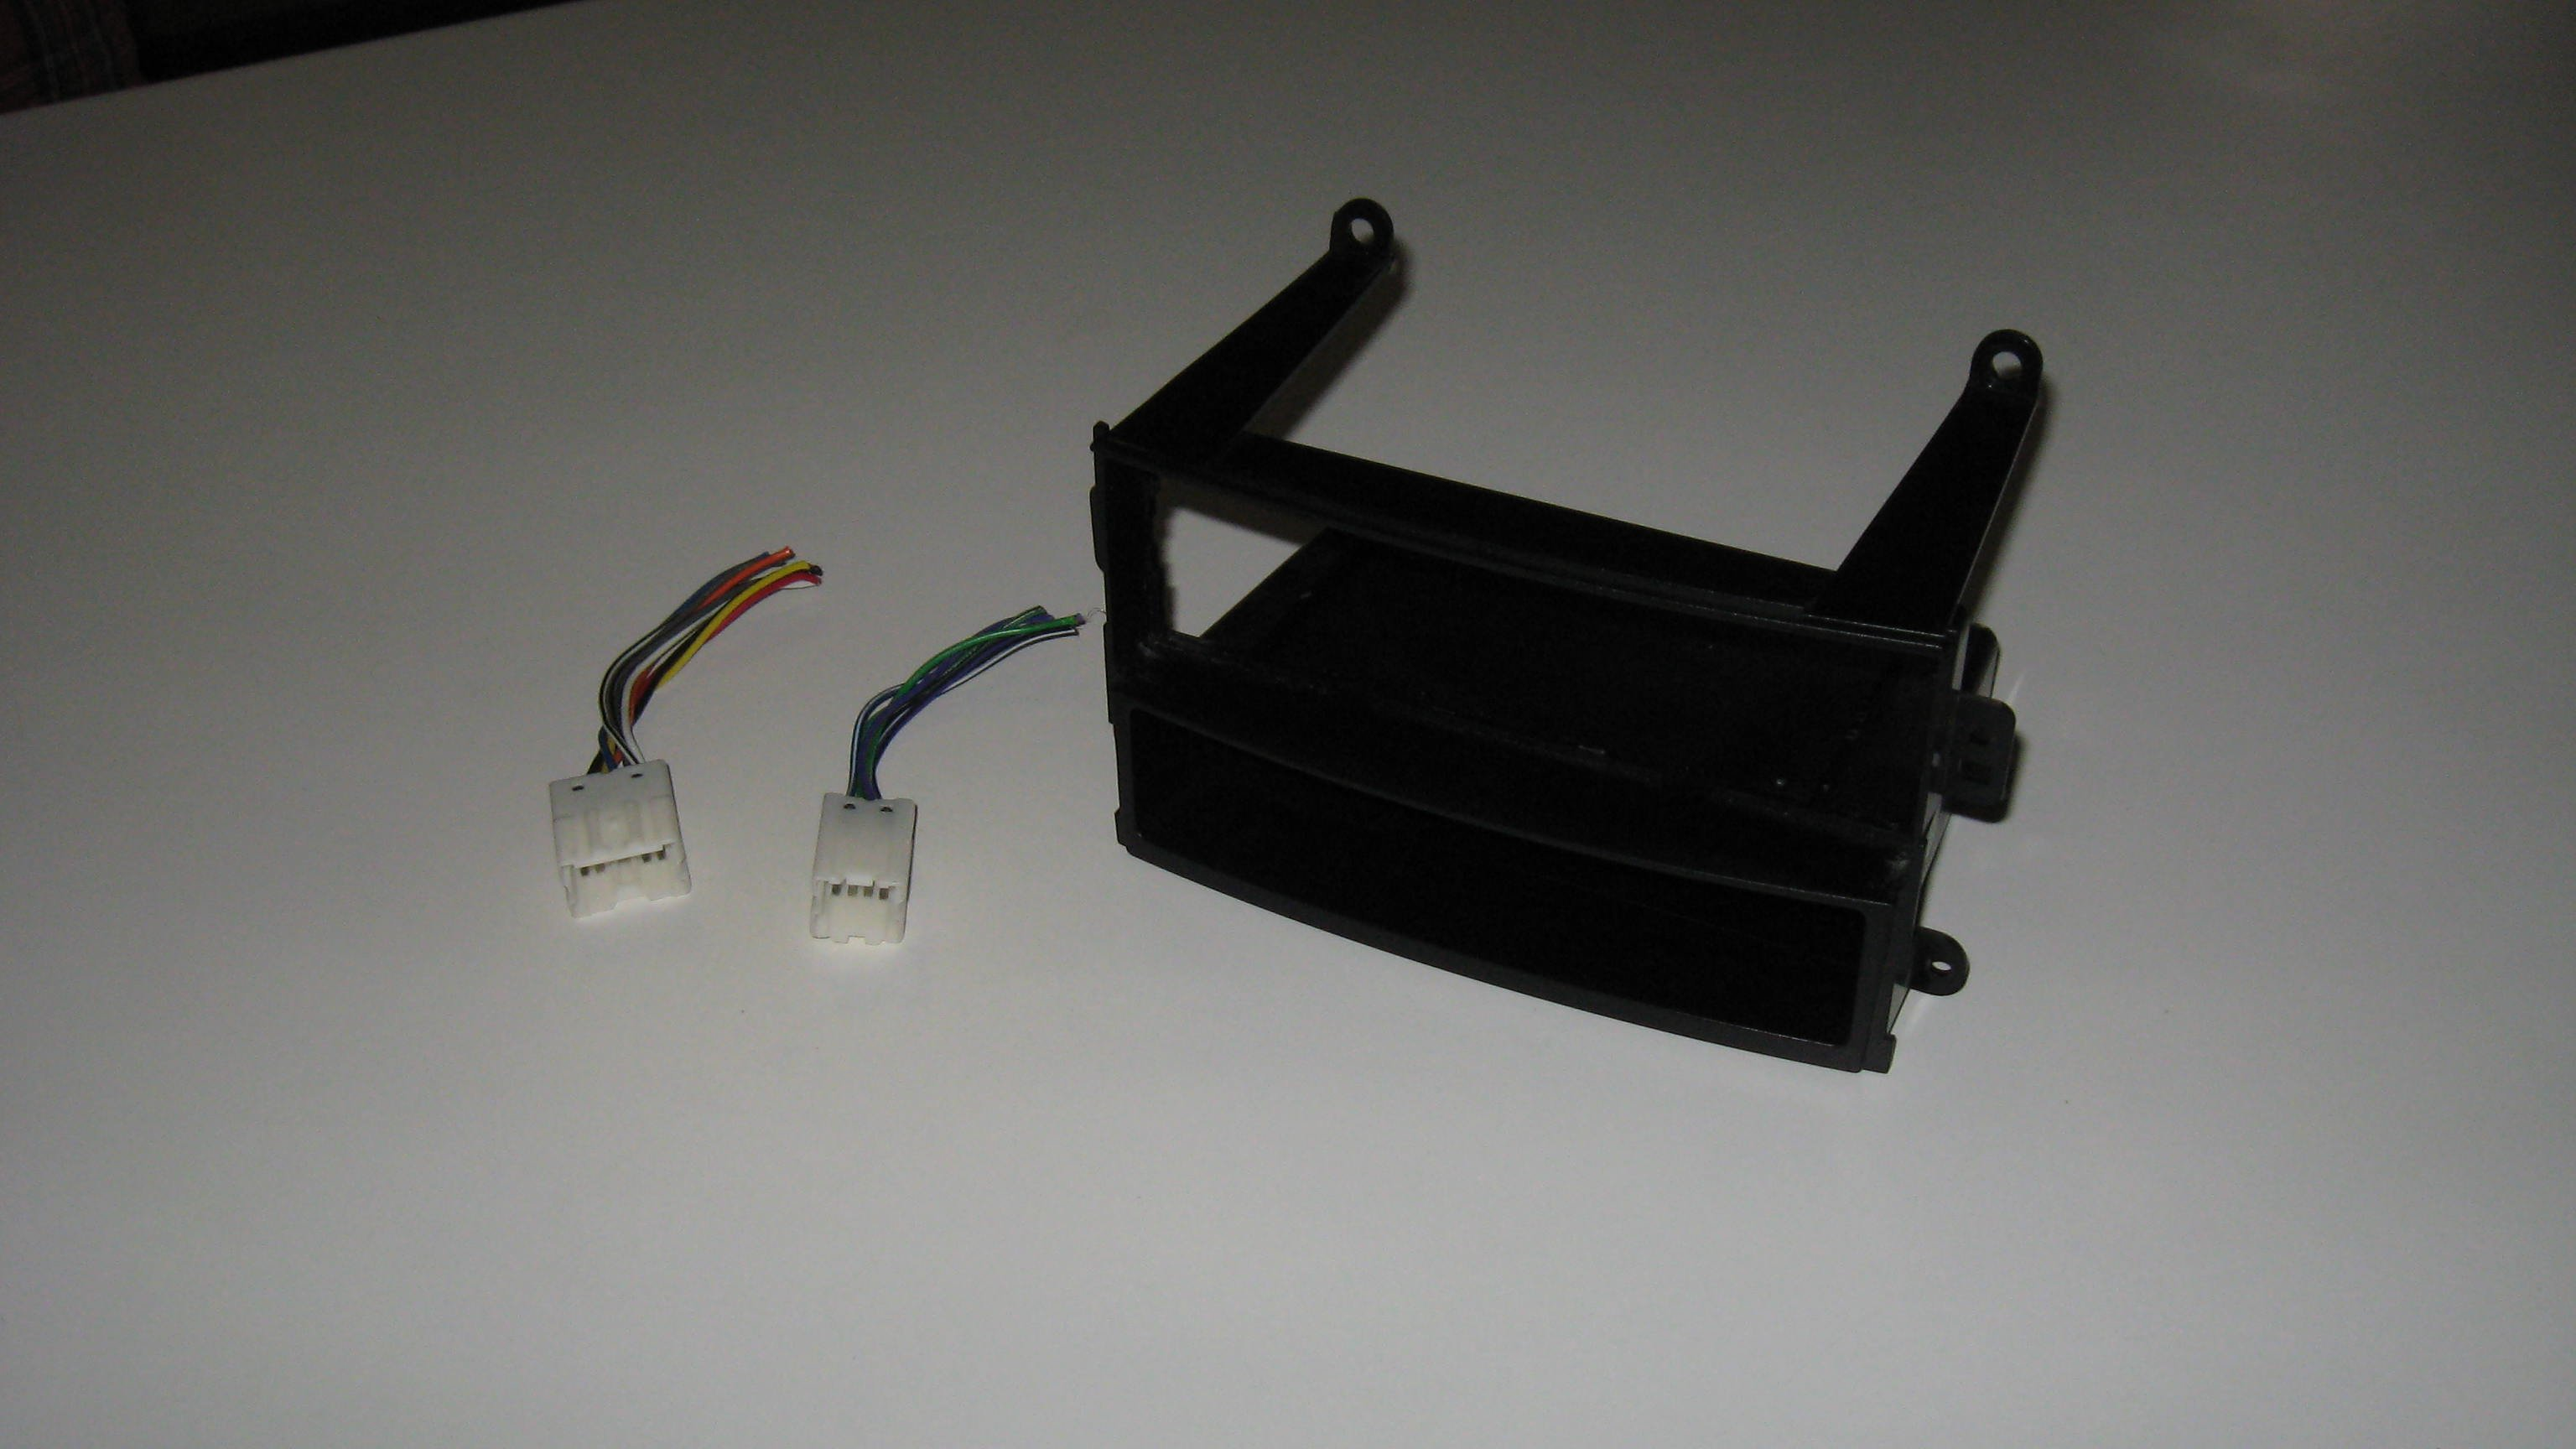 42810d1206833010 metra radio dash kit wiring harness price lowered radio_install_2 metra radio dash kit and wiring harness price lowered nissan dash kit and wiring harness at n-0.co